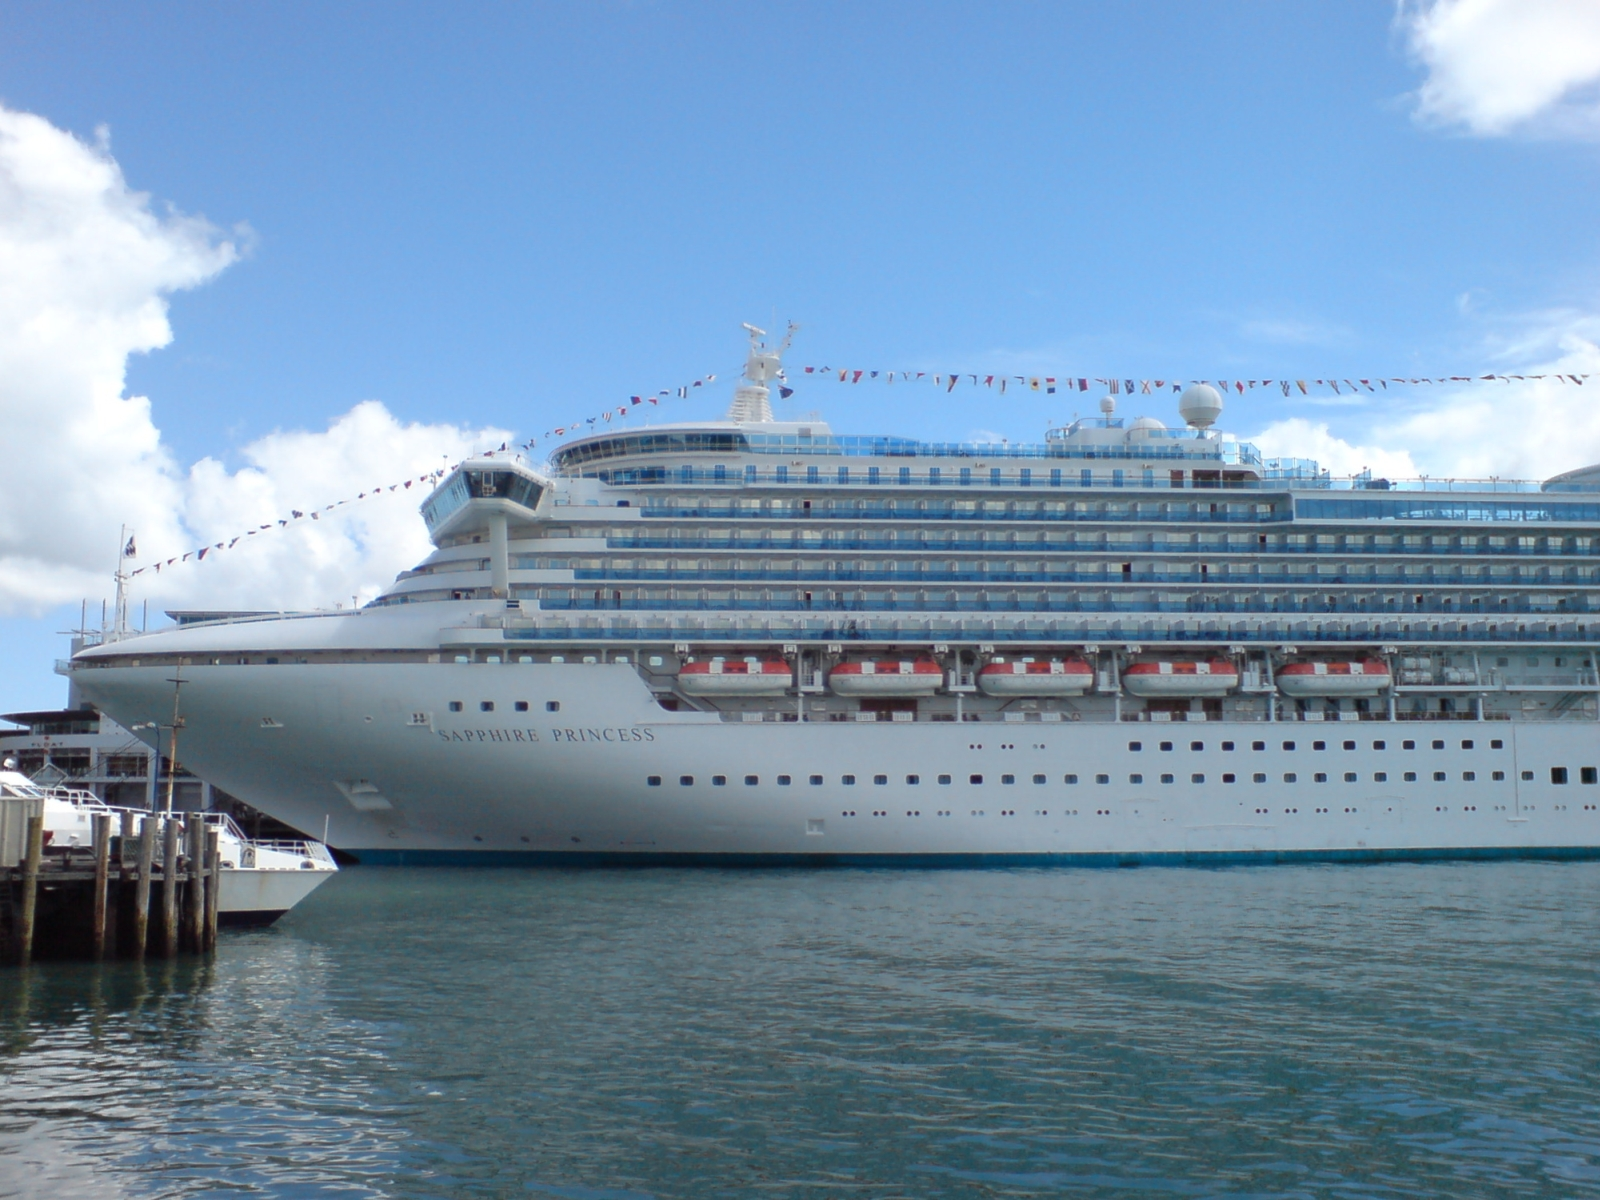 caribbean sapphire cruise princess guernsey itinerary mini france funnel night oct